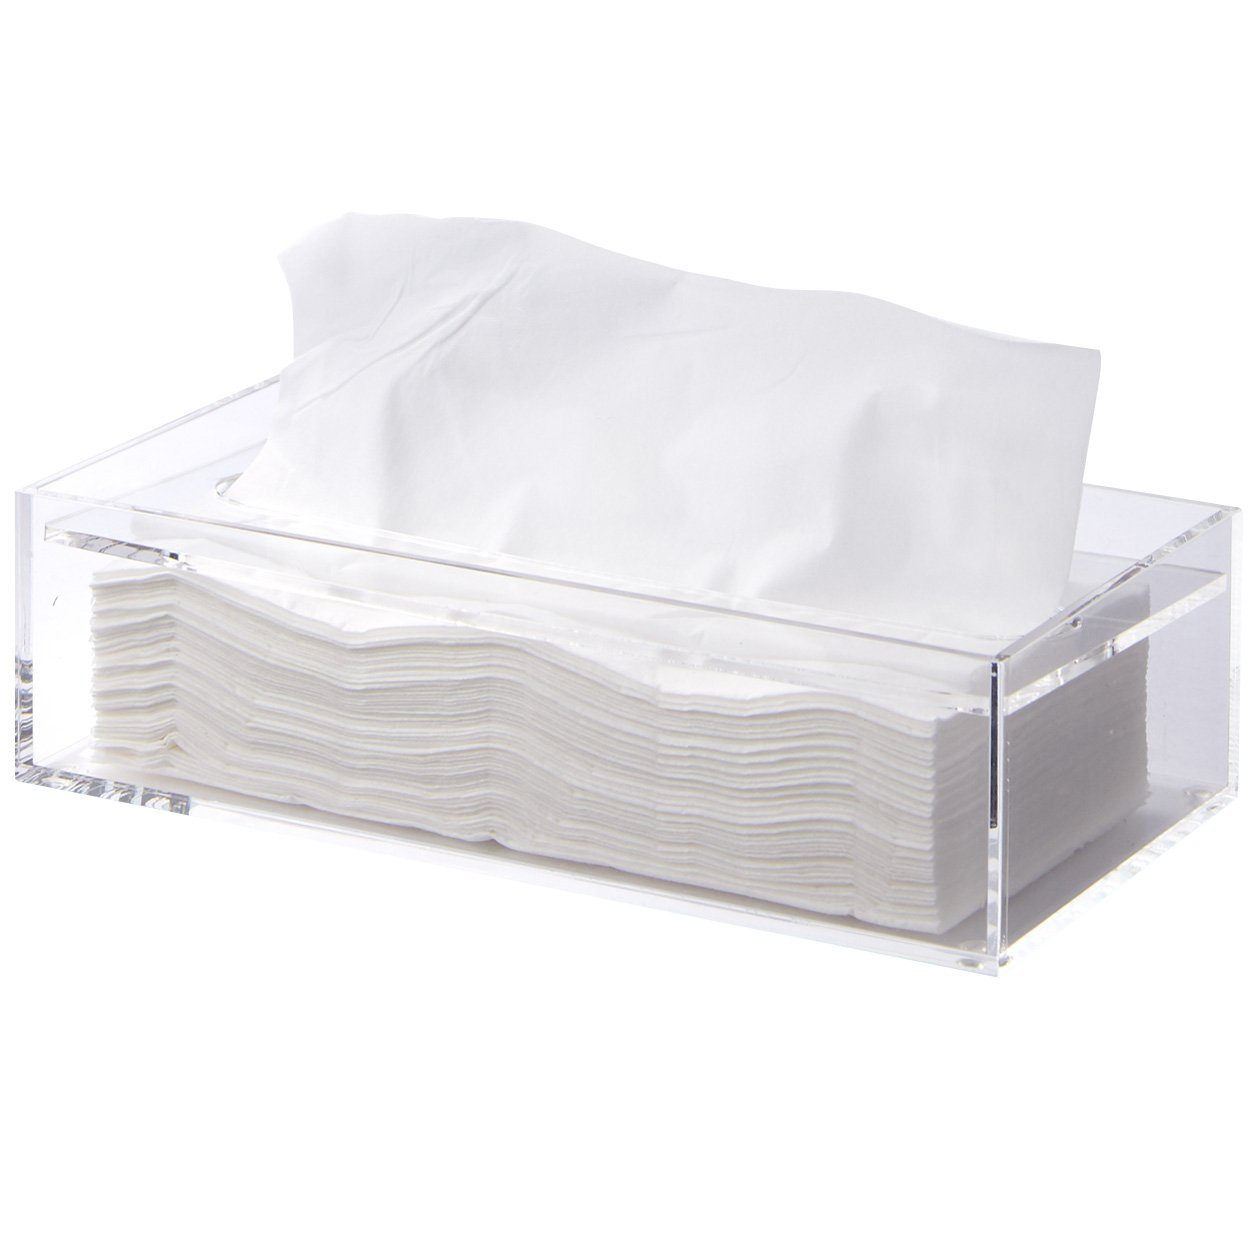 Amazon.com: [Muji]Acrylic Tissue Box 26 x 13 x 7cm from Japan: Home ...